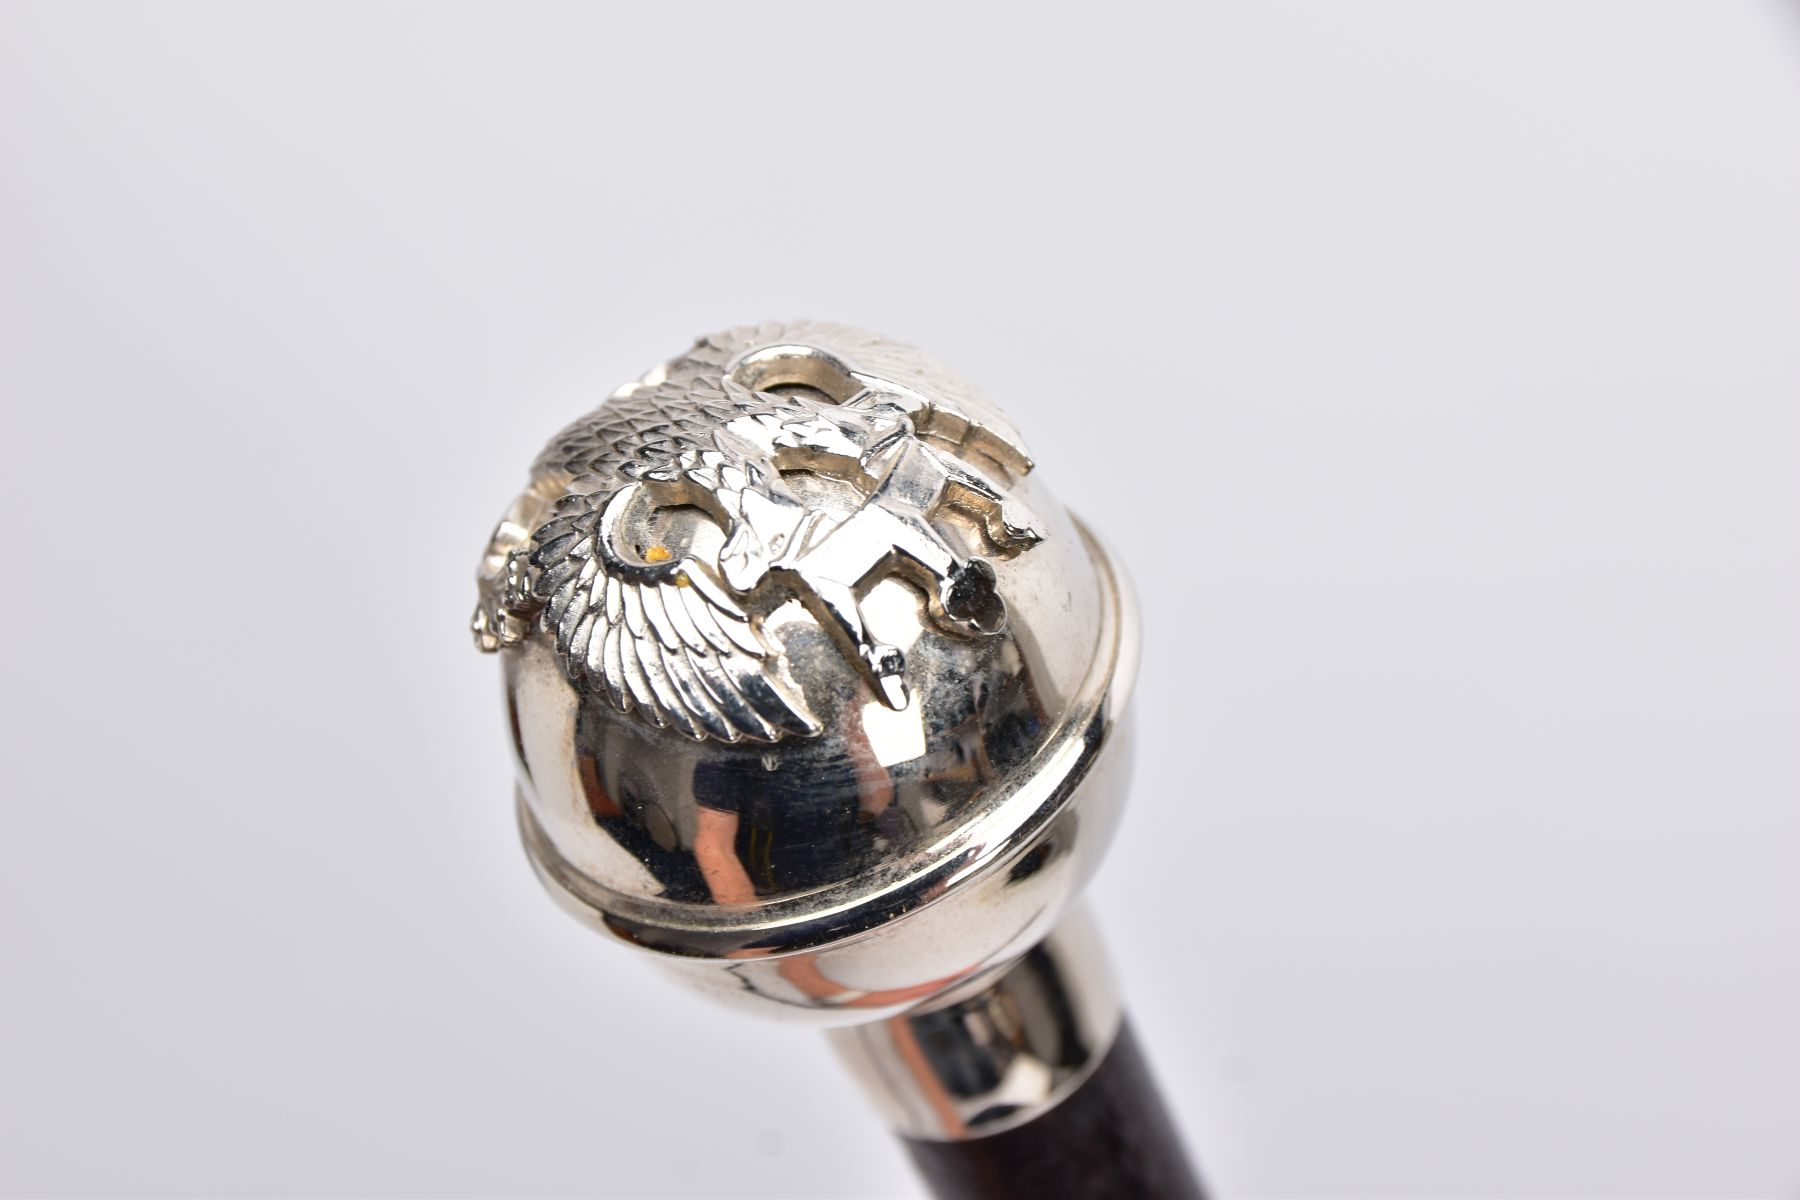 TWO MILITARY RELATED SWAGGER STYLE STICKS, to include a white metal sphere topped with white metal - Image 6 of 9